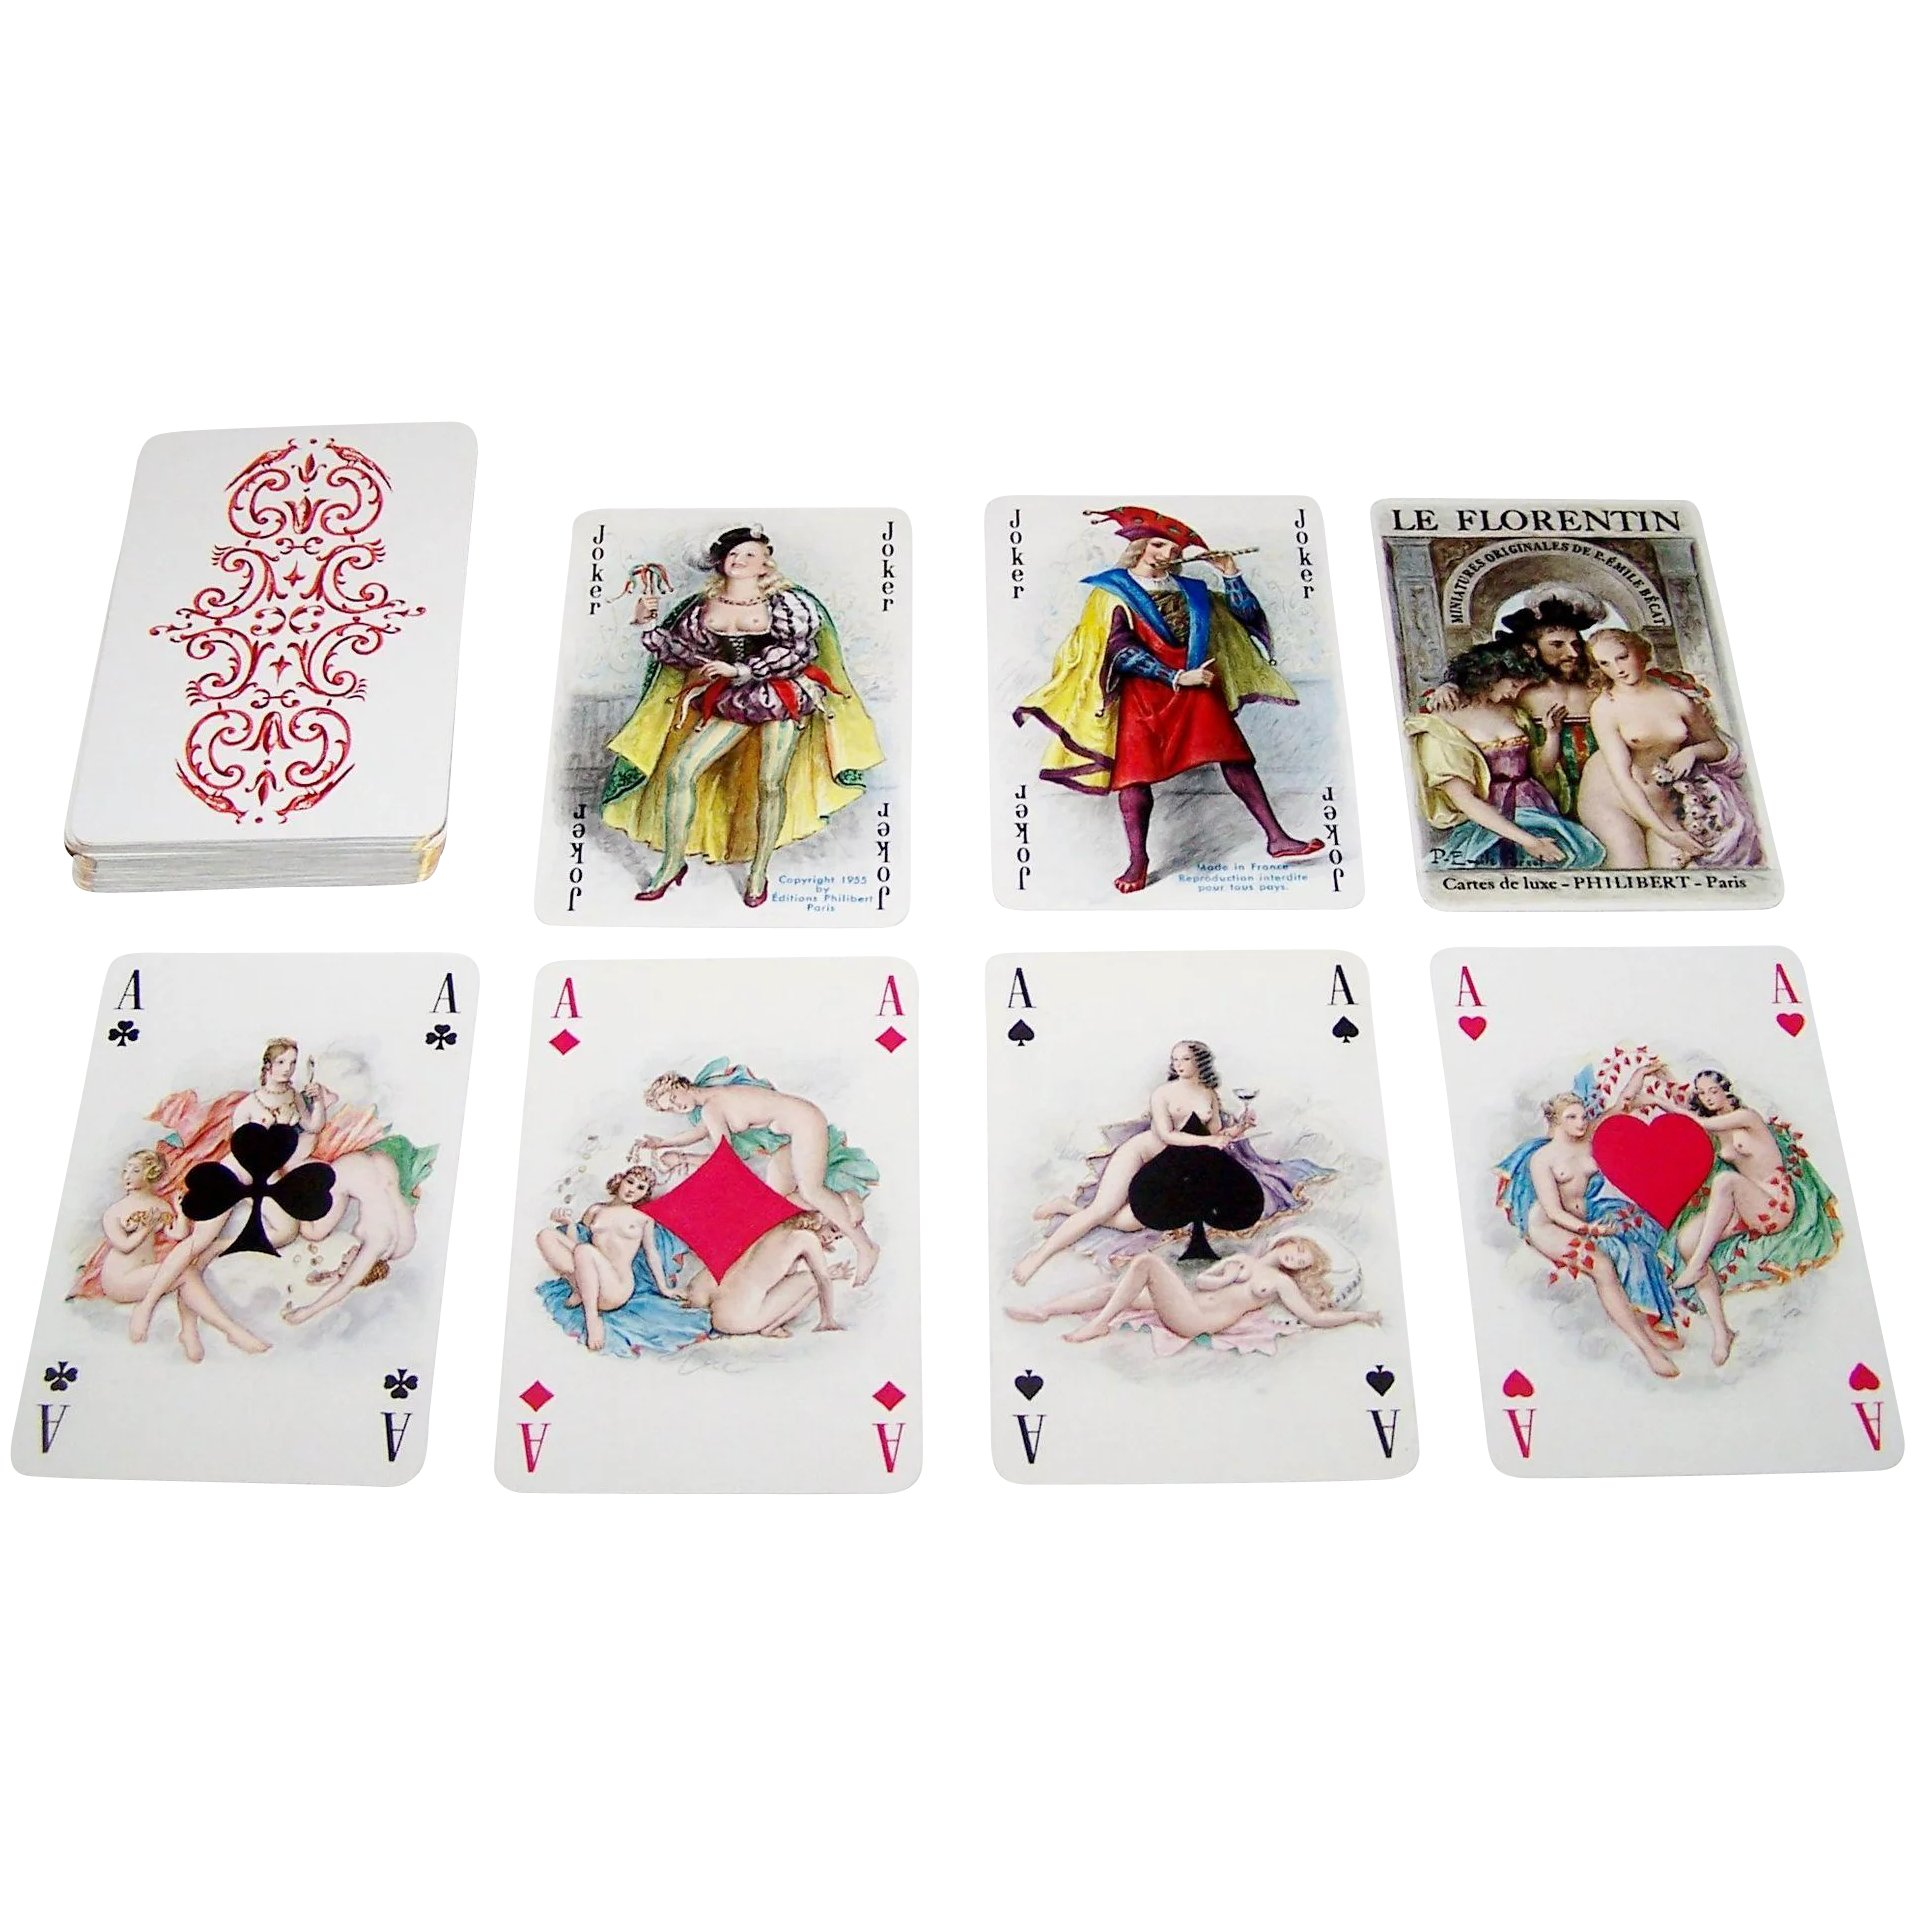 Le florentin erotic playing cards of paulemile becat - 1 part 7